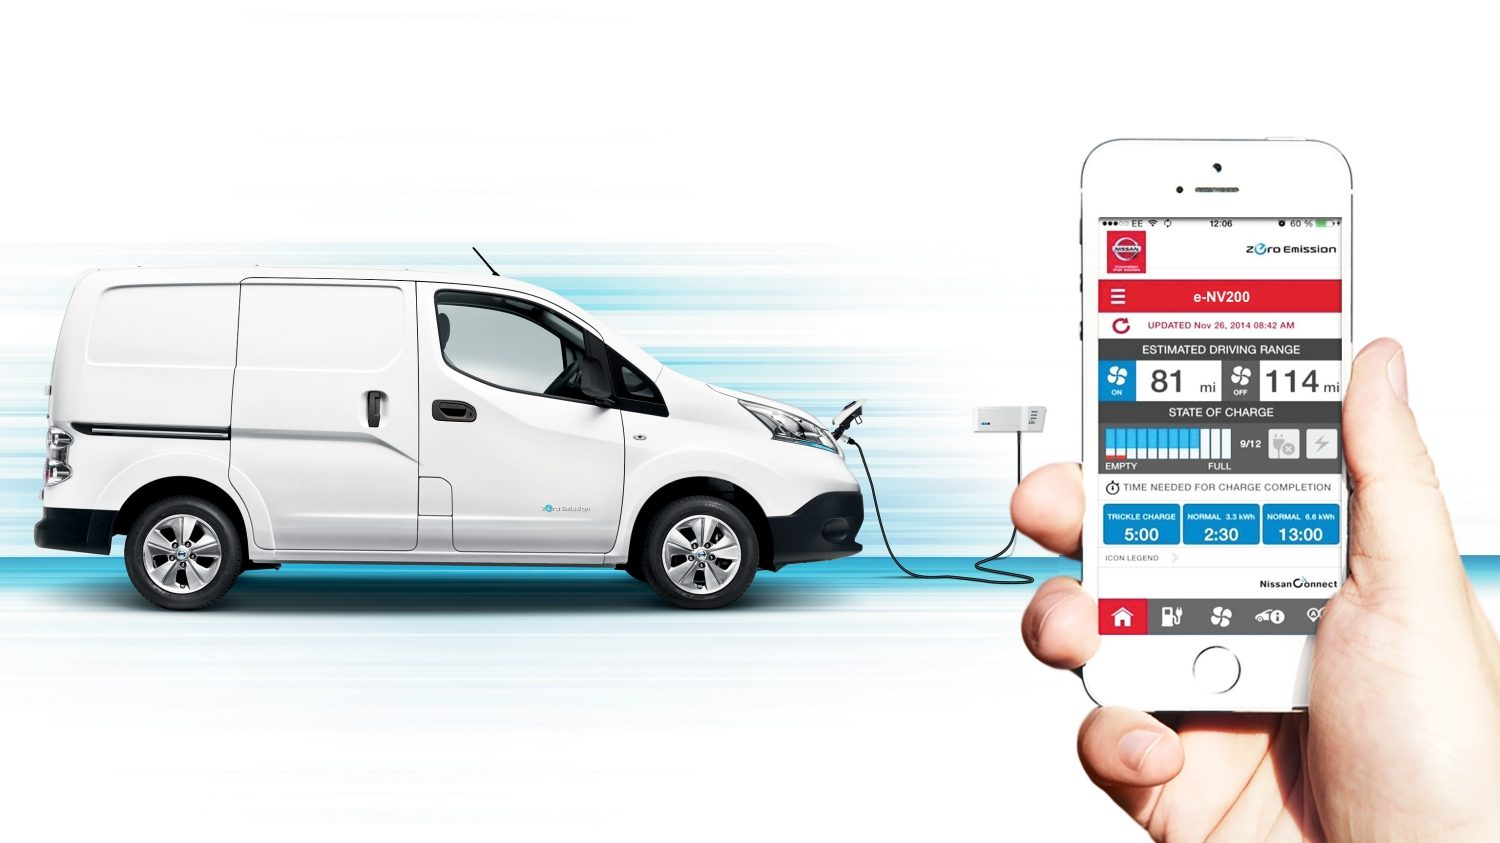 Nissan e-NV200 - Stay connected with your phone